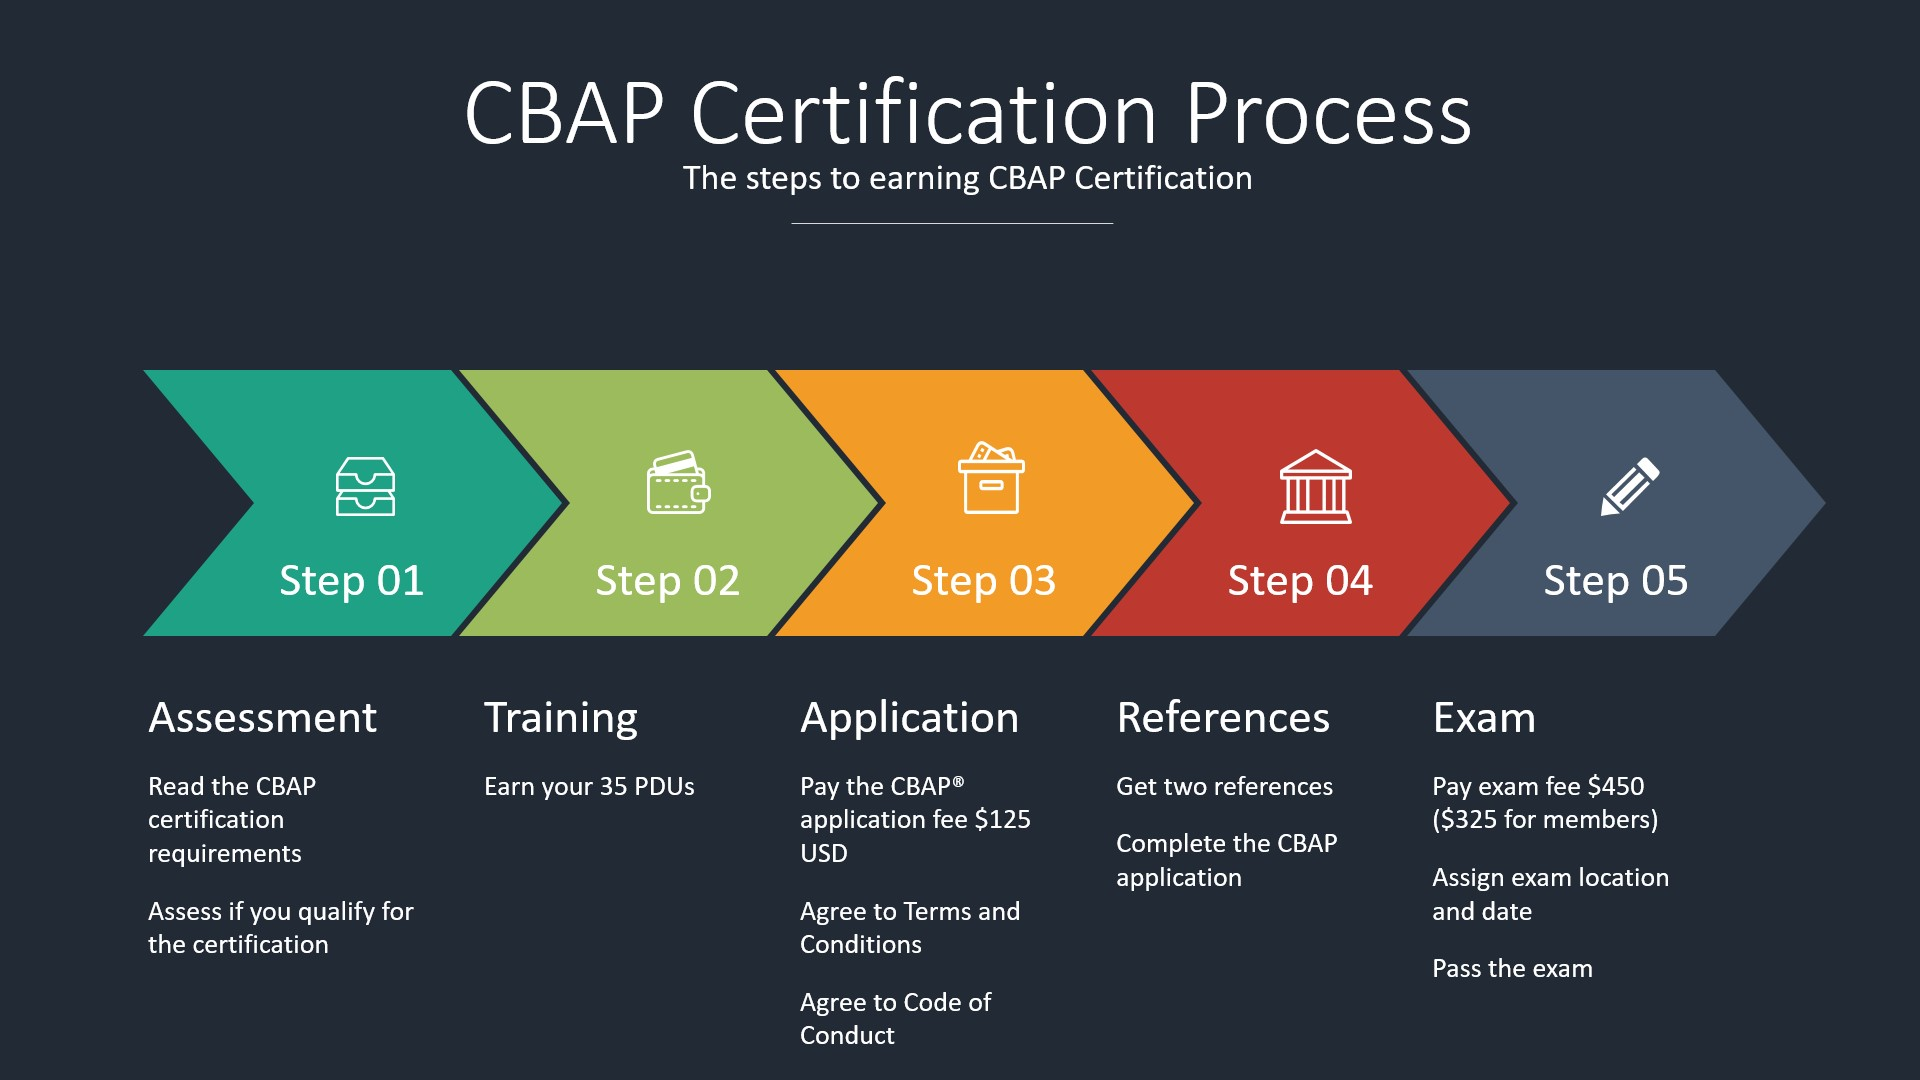 CBAP Certification Process